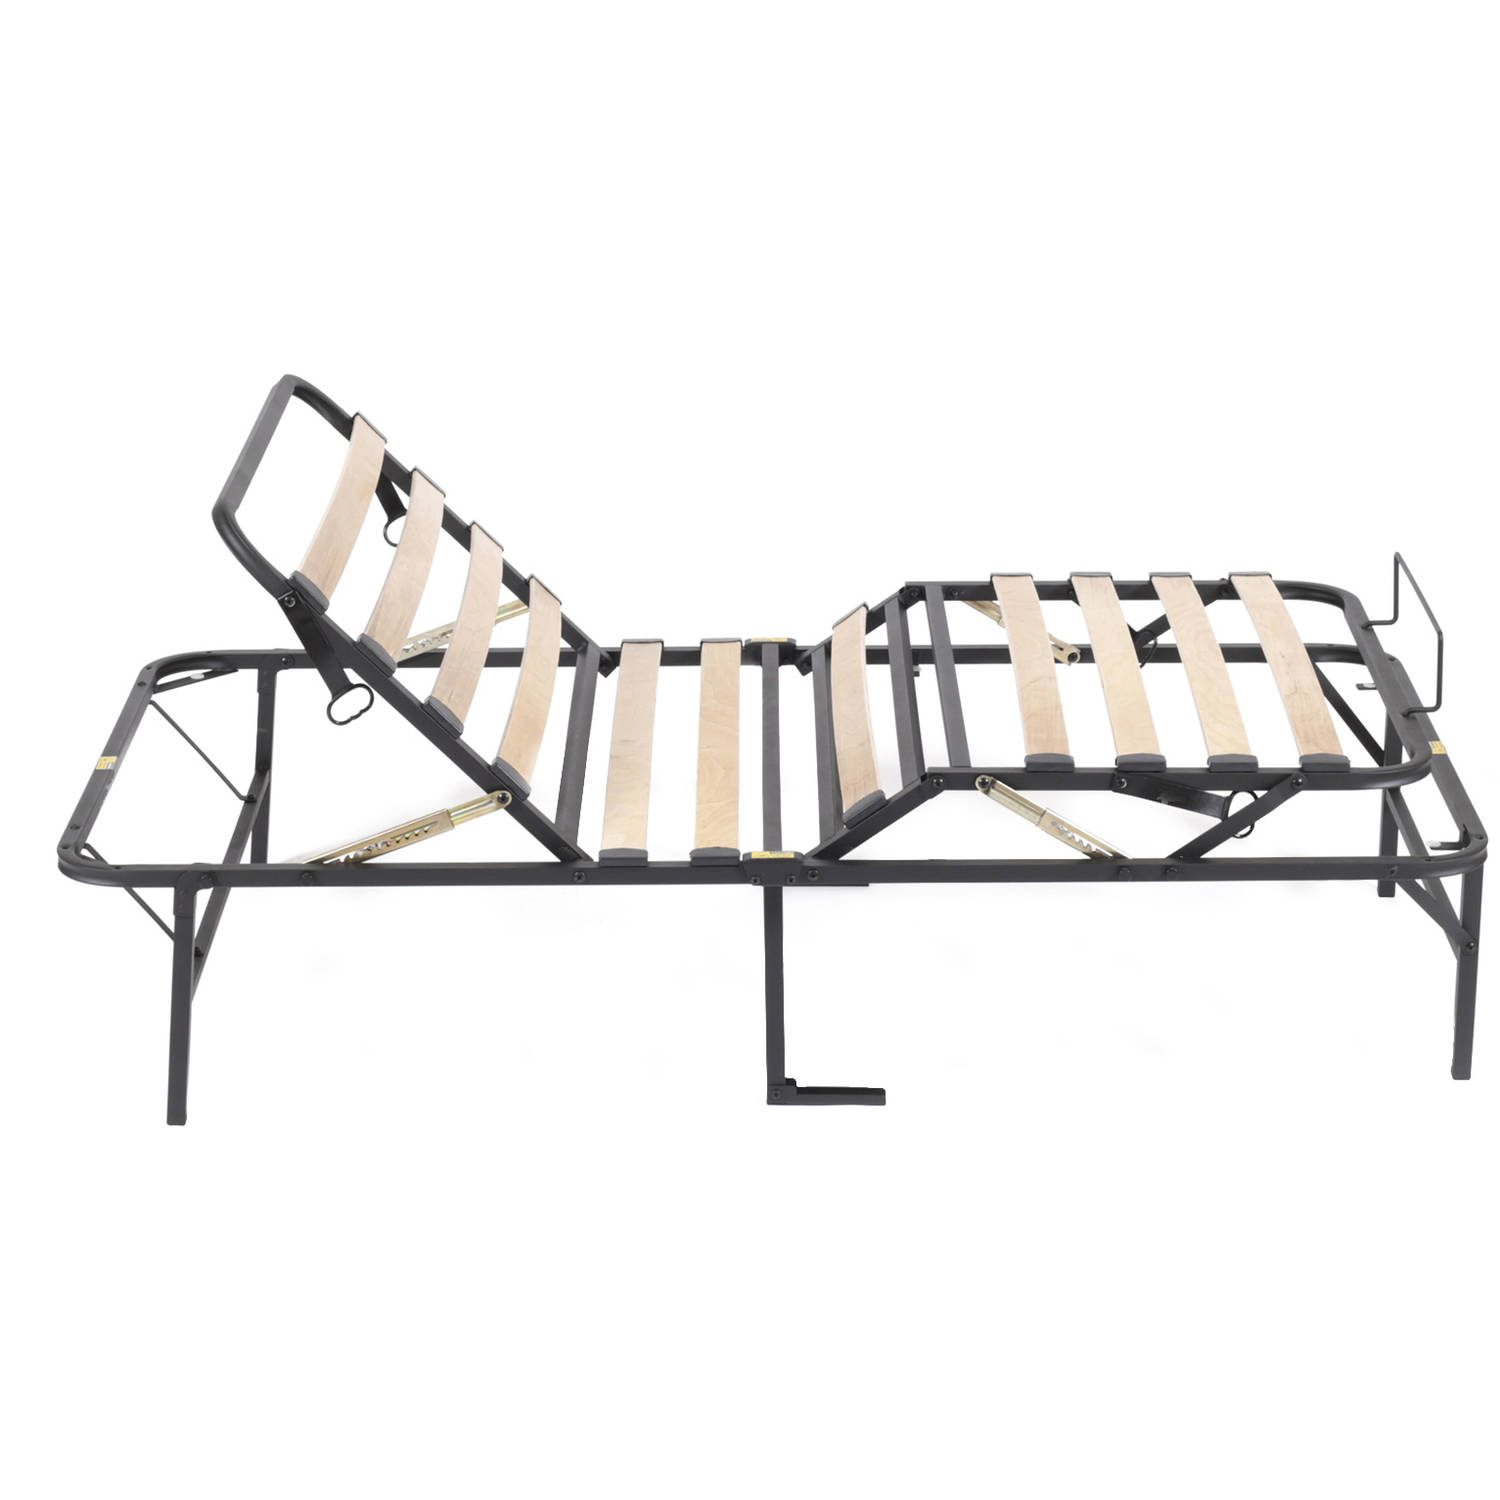 Pragmabed Simple Adjust Head And Foot Wood Slat Manually Adjule Foundation